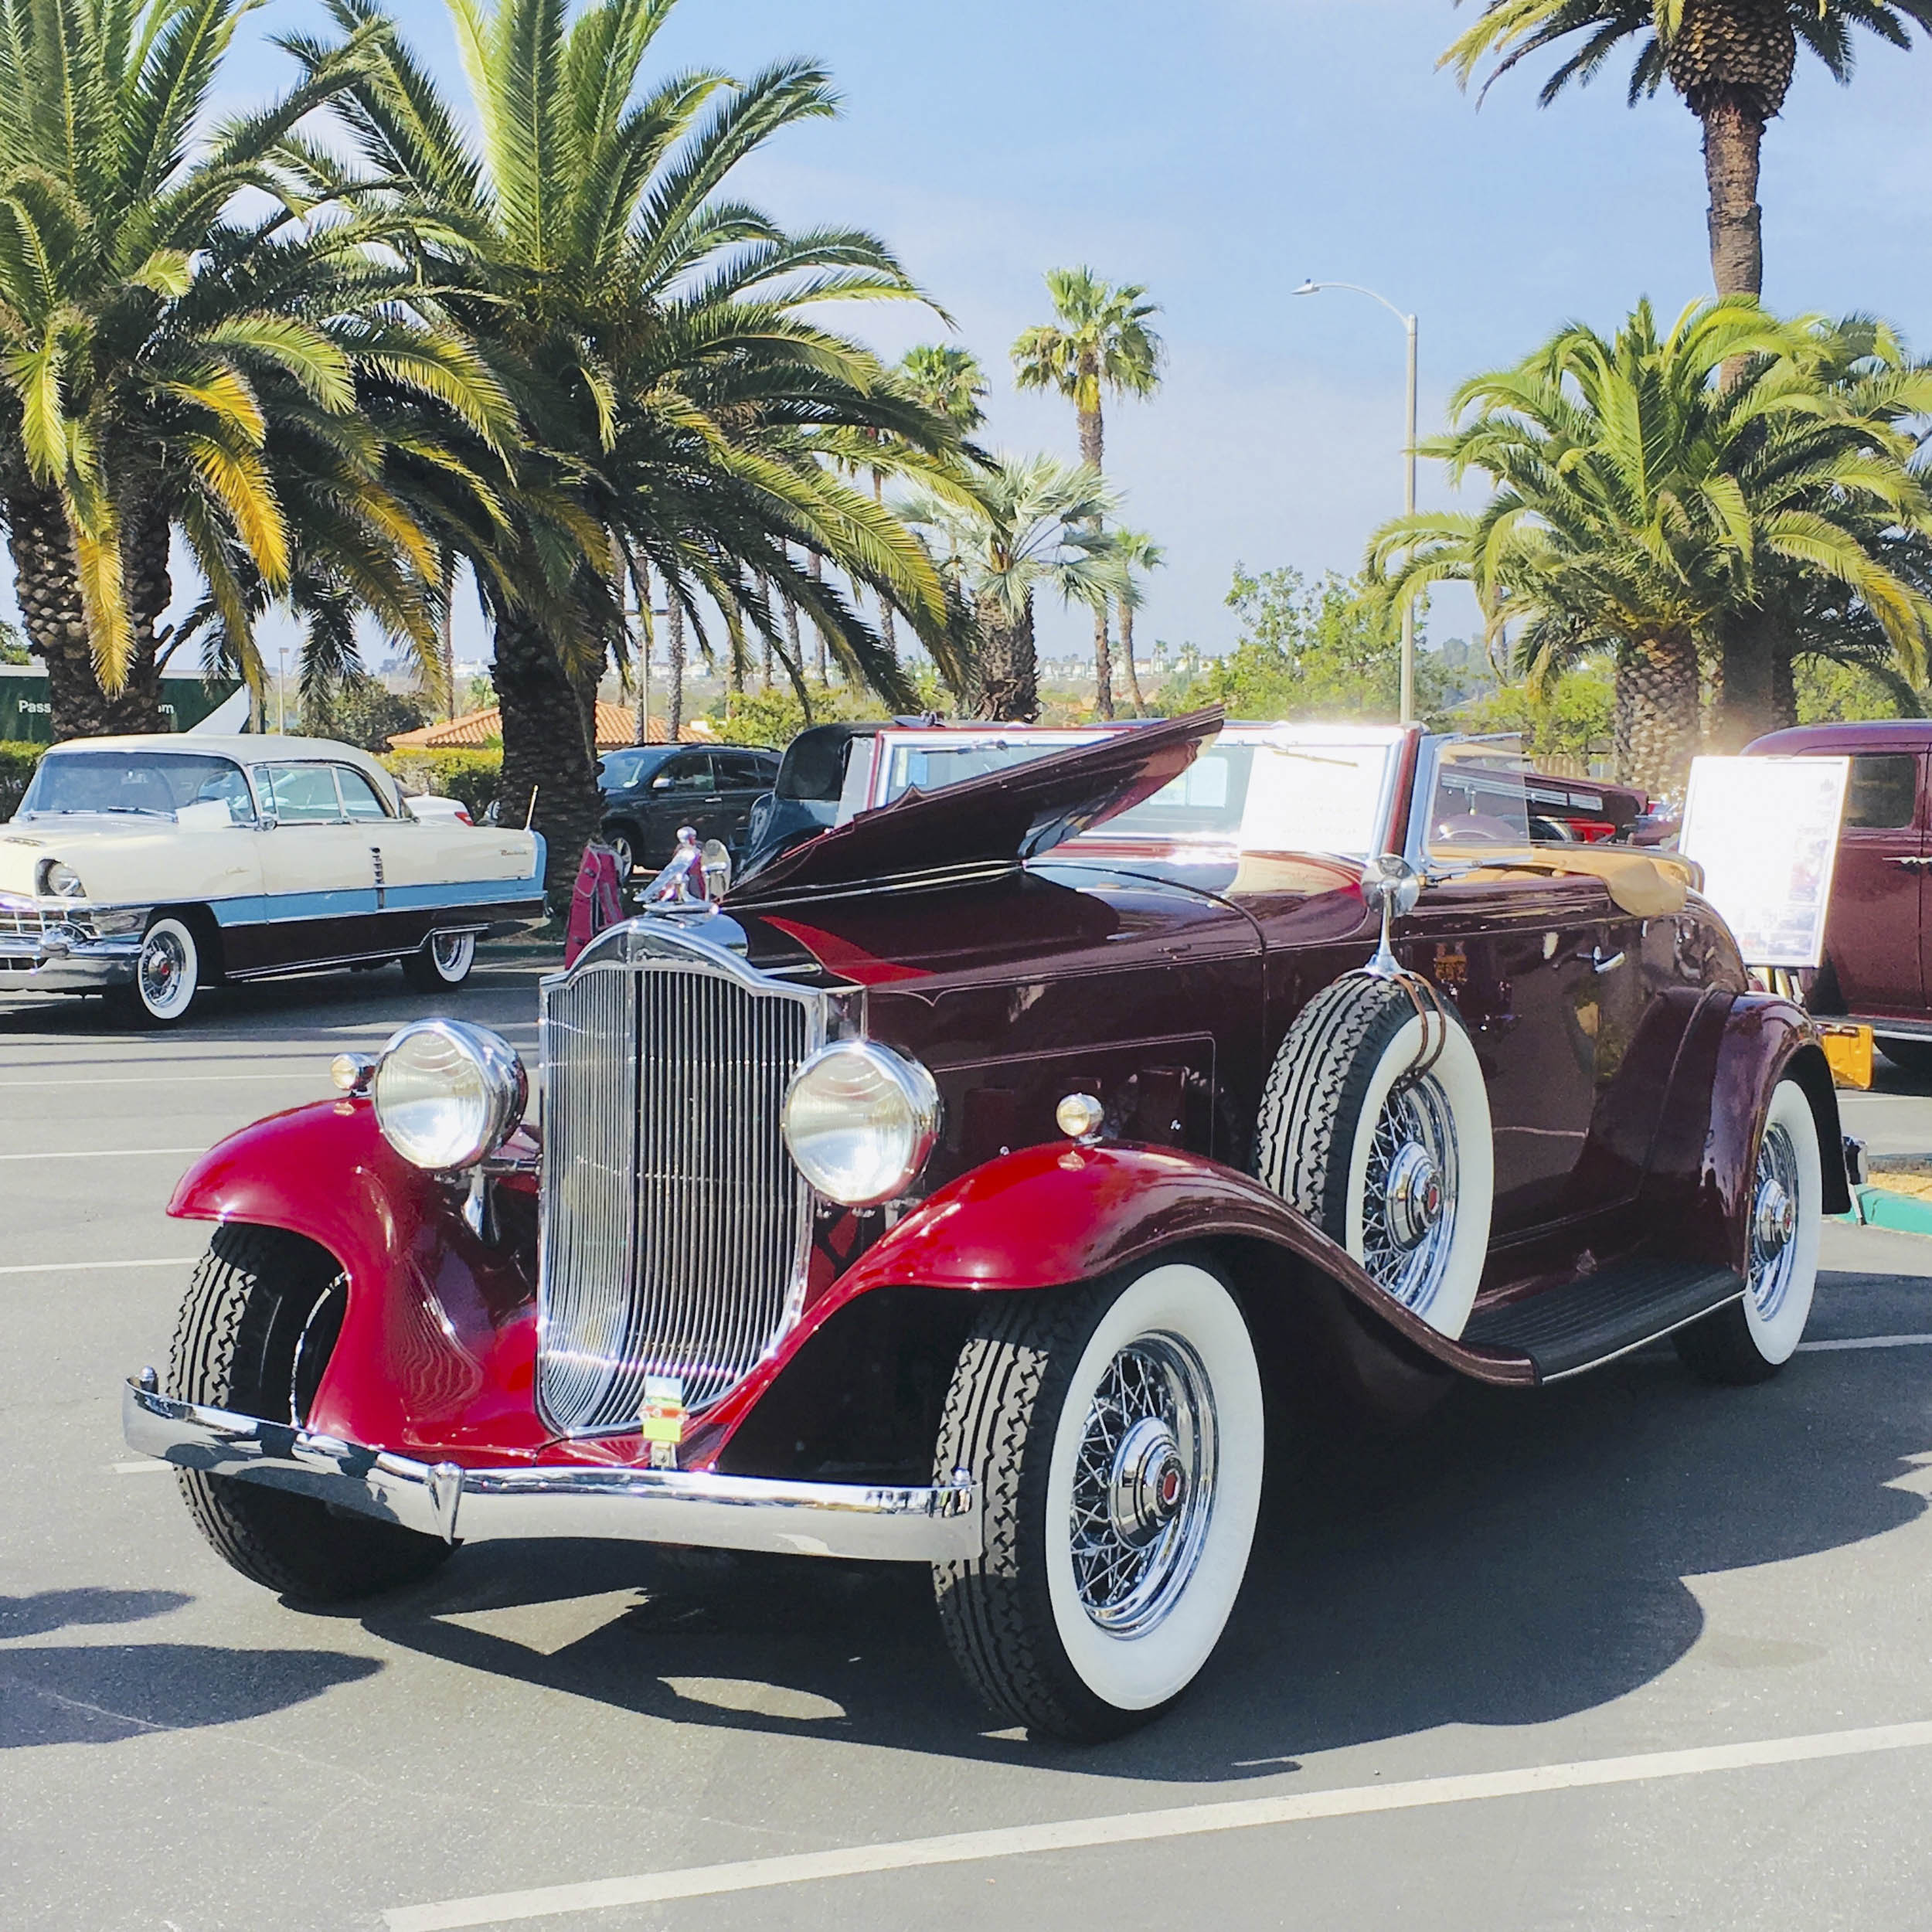 1932 Packard Light 8 coupe roadster